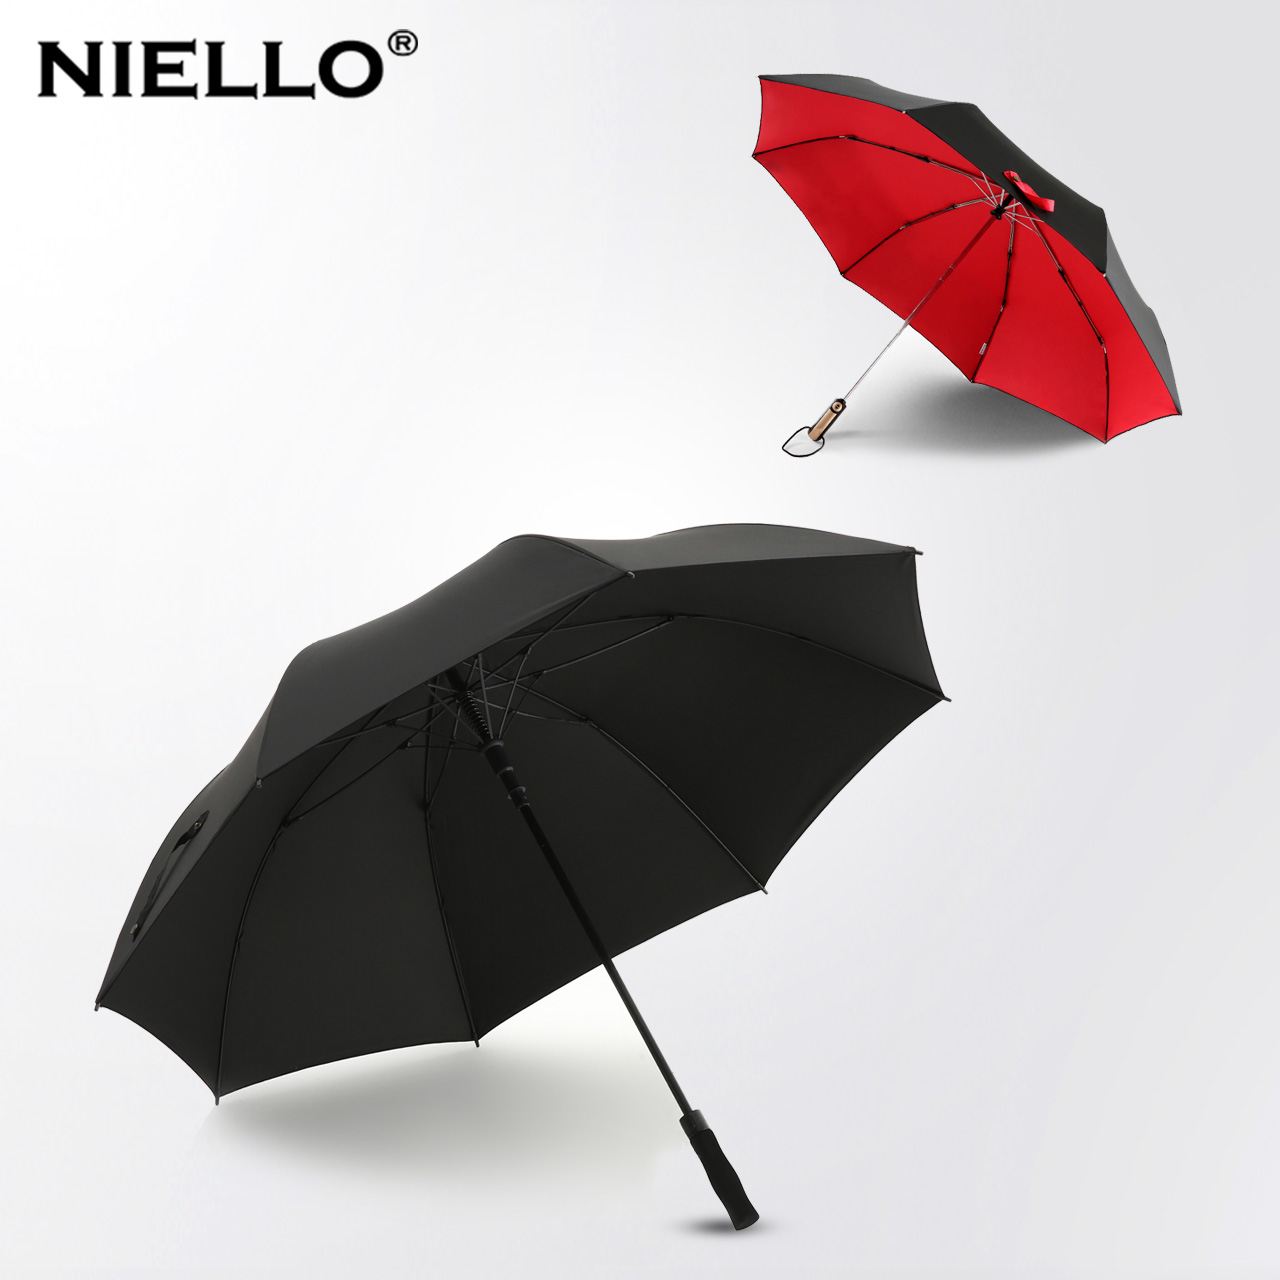 [Value] combination double oversized umbrella automatic umbrella nailuo + double skillet large umbrella against storm